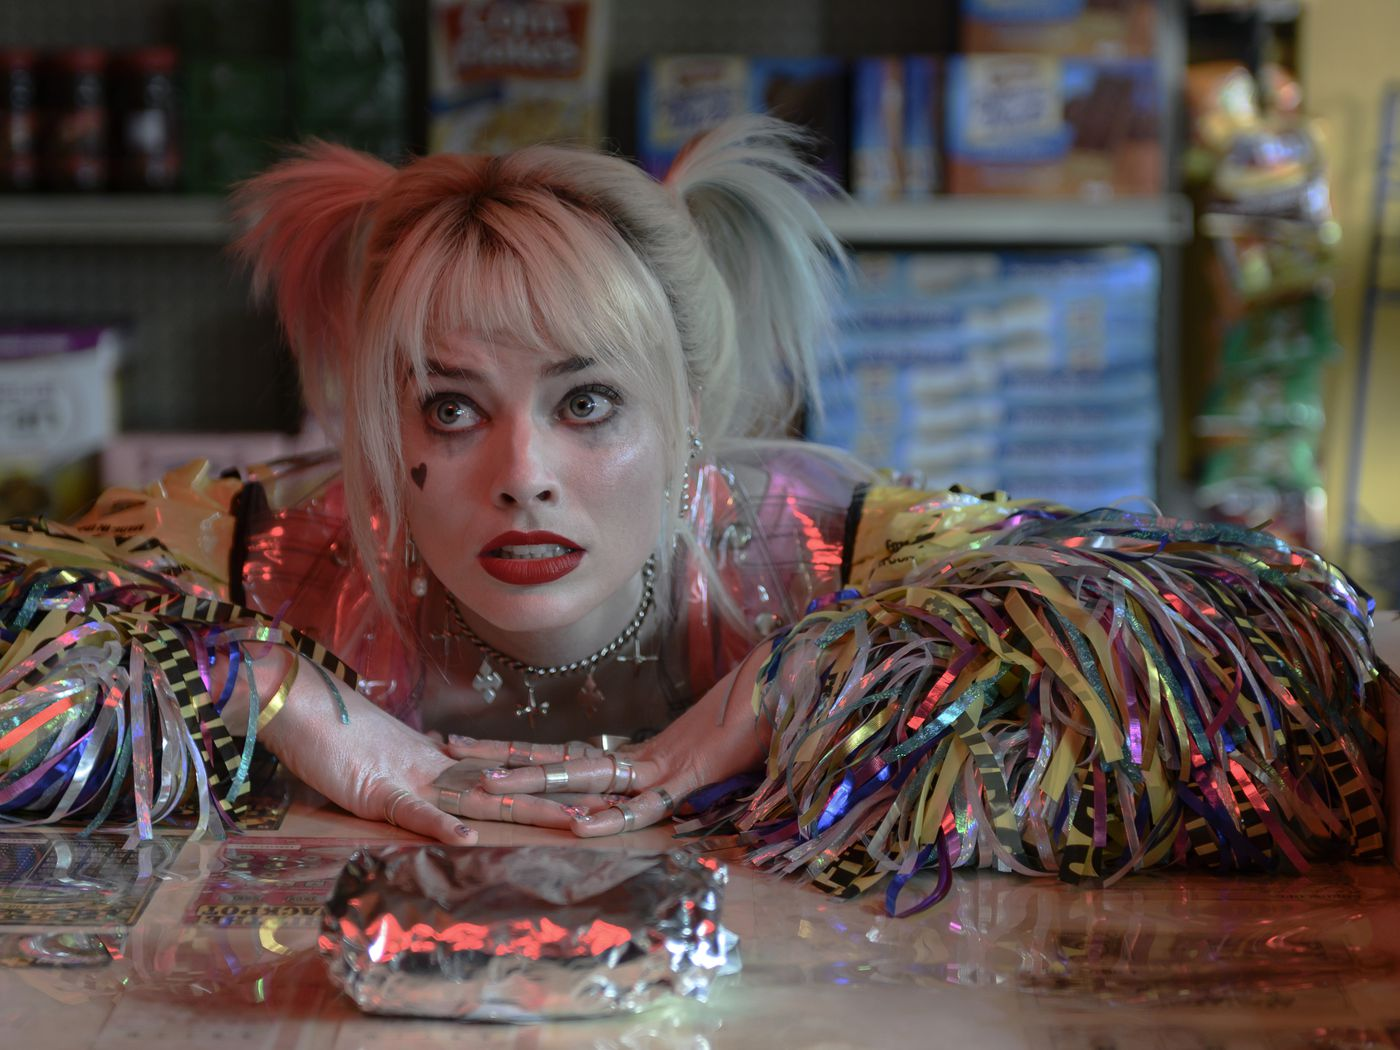 In Birds Of Prey Harley Quinn Is Fueled By A Bacon Egg And Cheese Eater